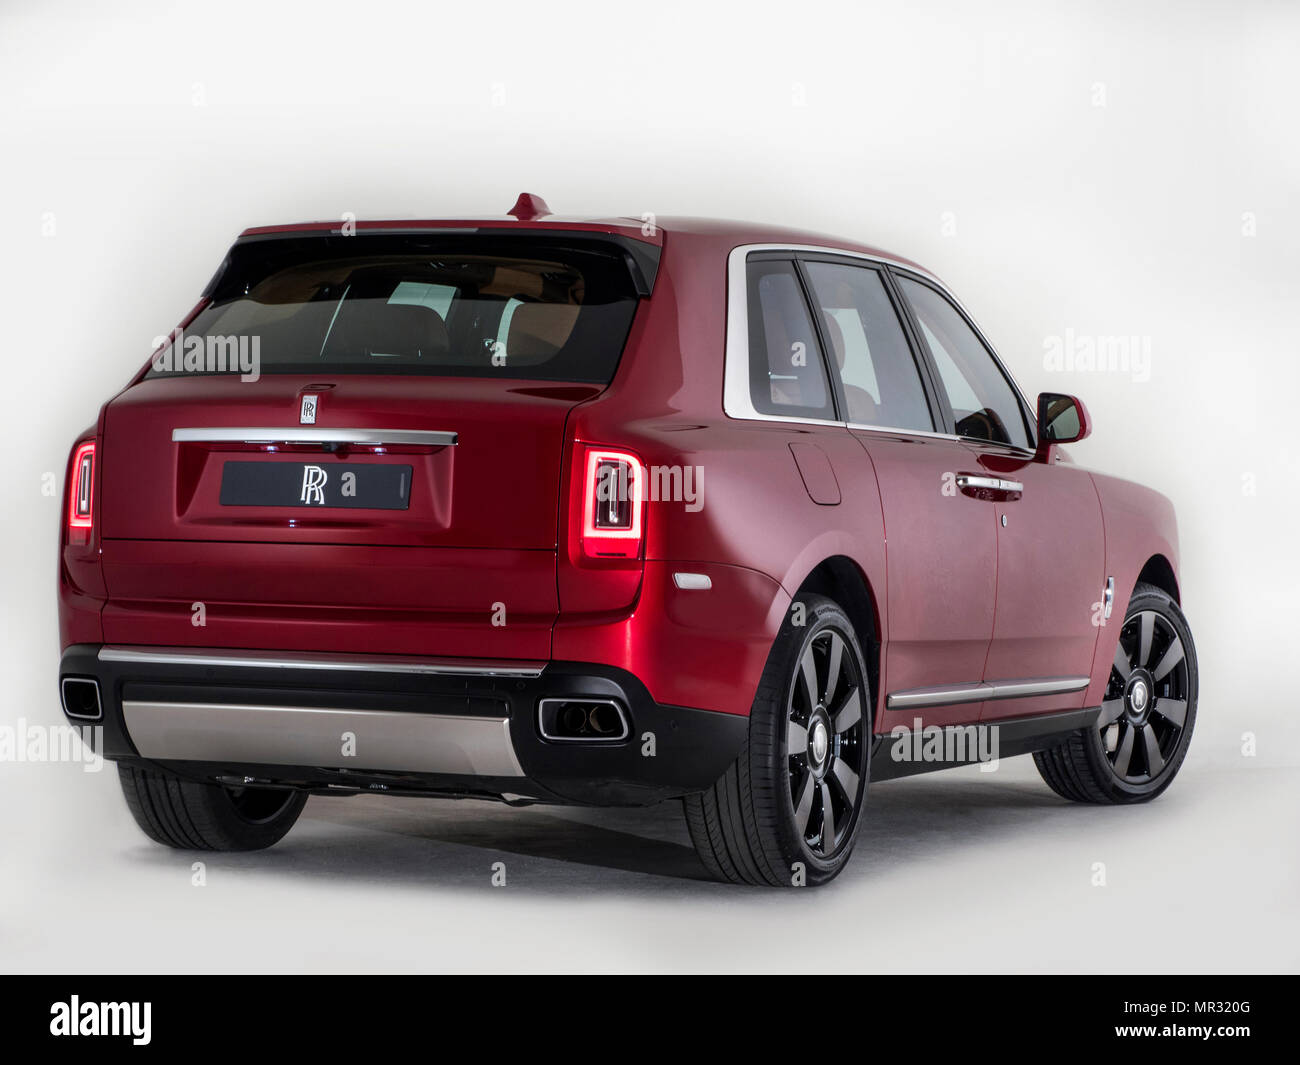 rolls royce cullinan suv 2018 stock photo 186308208 alamy. Black Bedroom Furniture Sets. Home Design Ideas